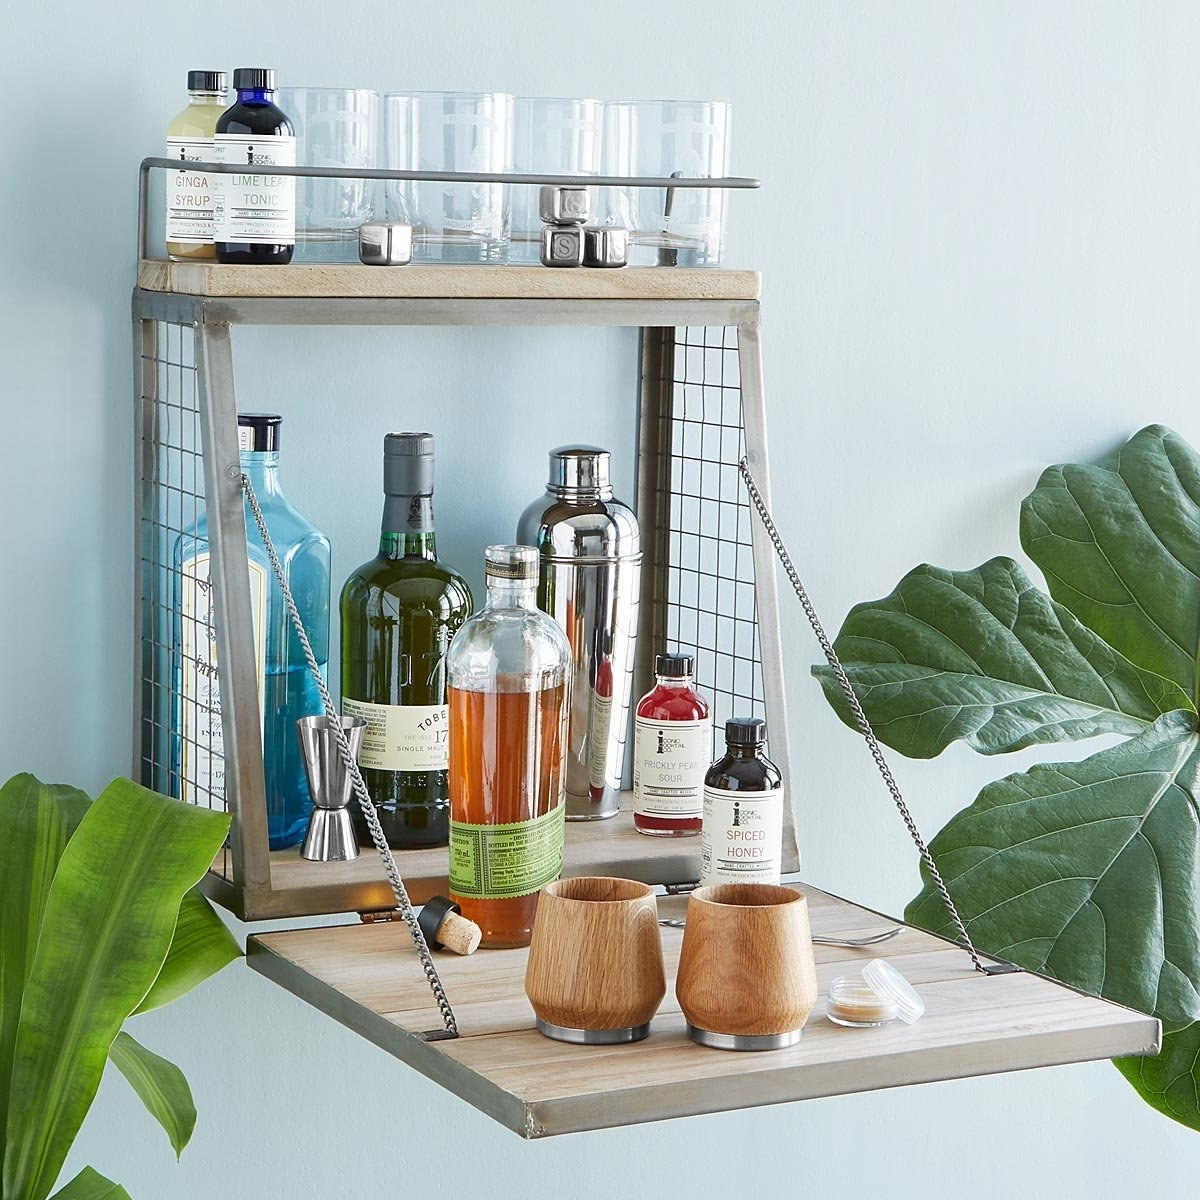 The foldout bar which has two storage shelves and a small table